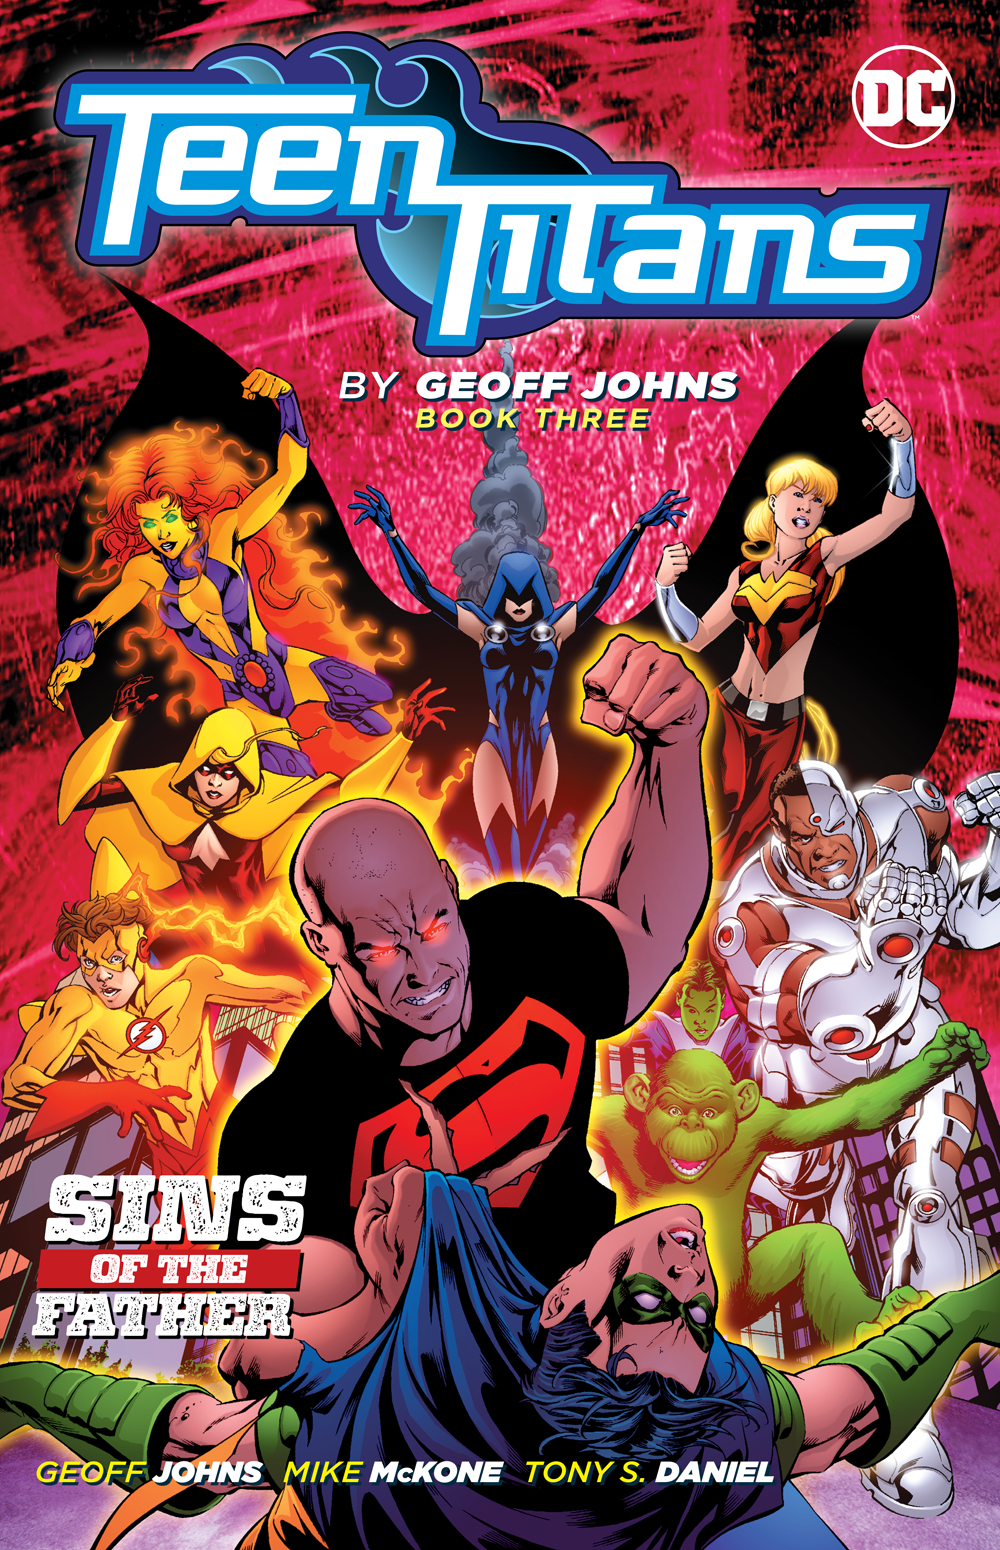 Teen Titans By Geoff Johns: Volume 3 TP